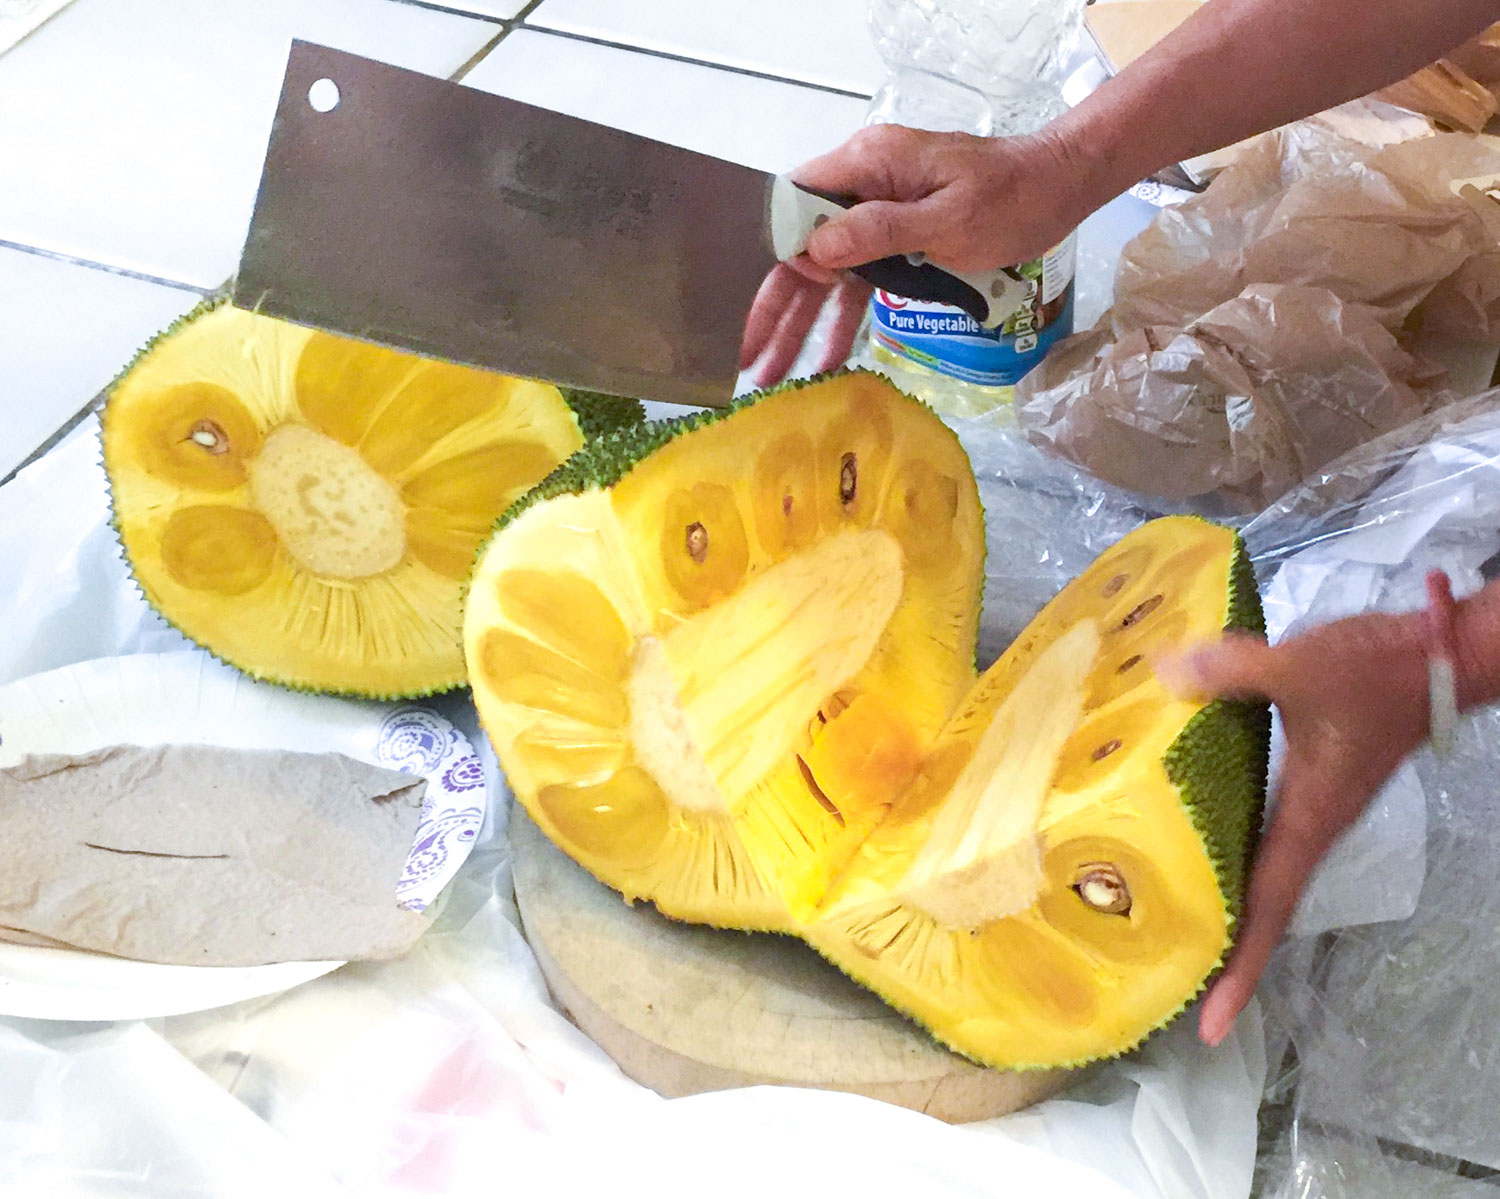 Jackfruit is one of the delicious exotic fruits originally from India but is now found all over Asia.